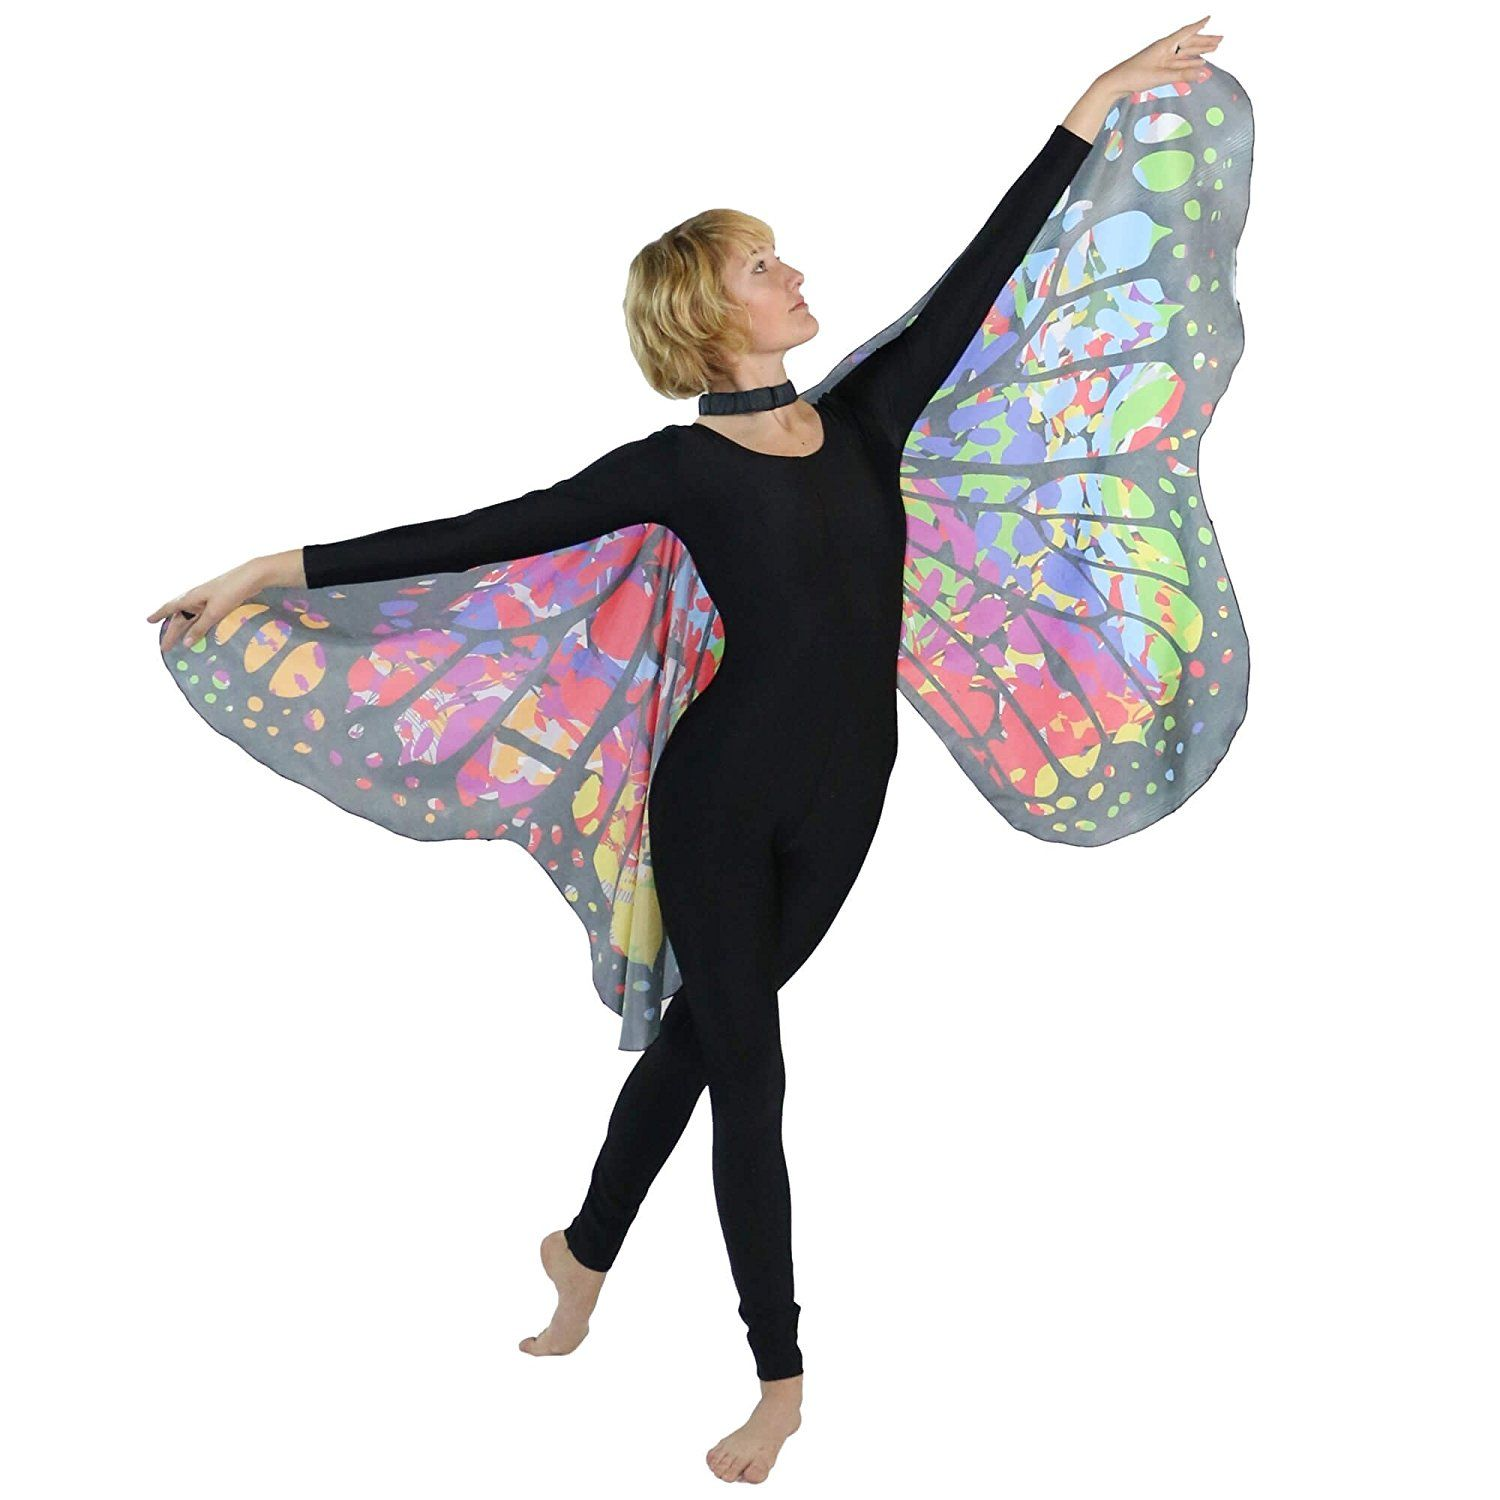 f1ecbf8e265cf Amazon.com: Danzcue Adult Soft Colorful Butterfly Wings Dance Costume  Accessory: Clothing